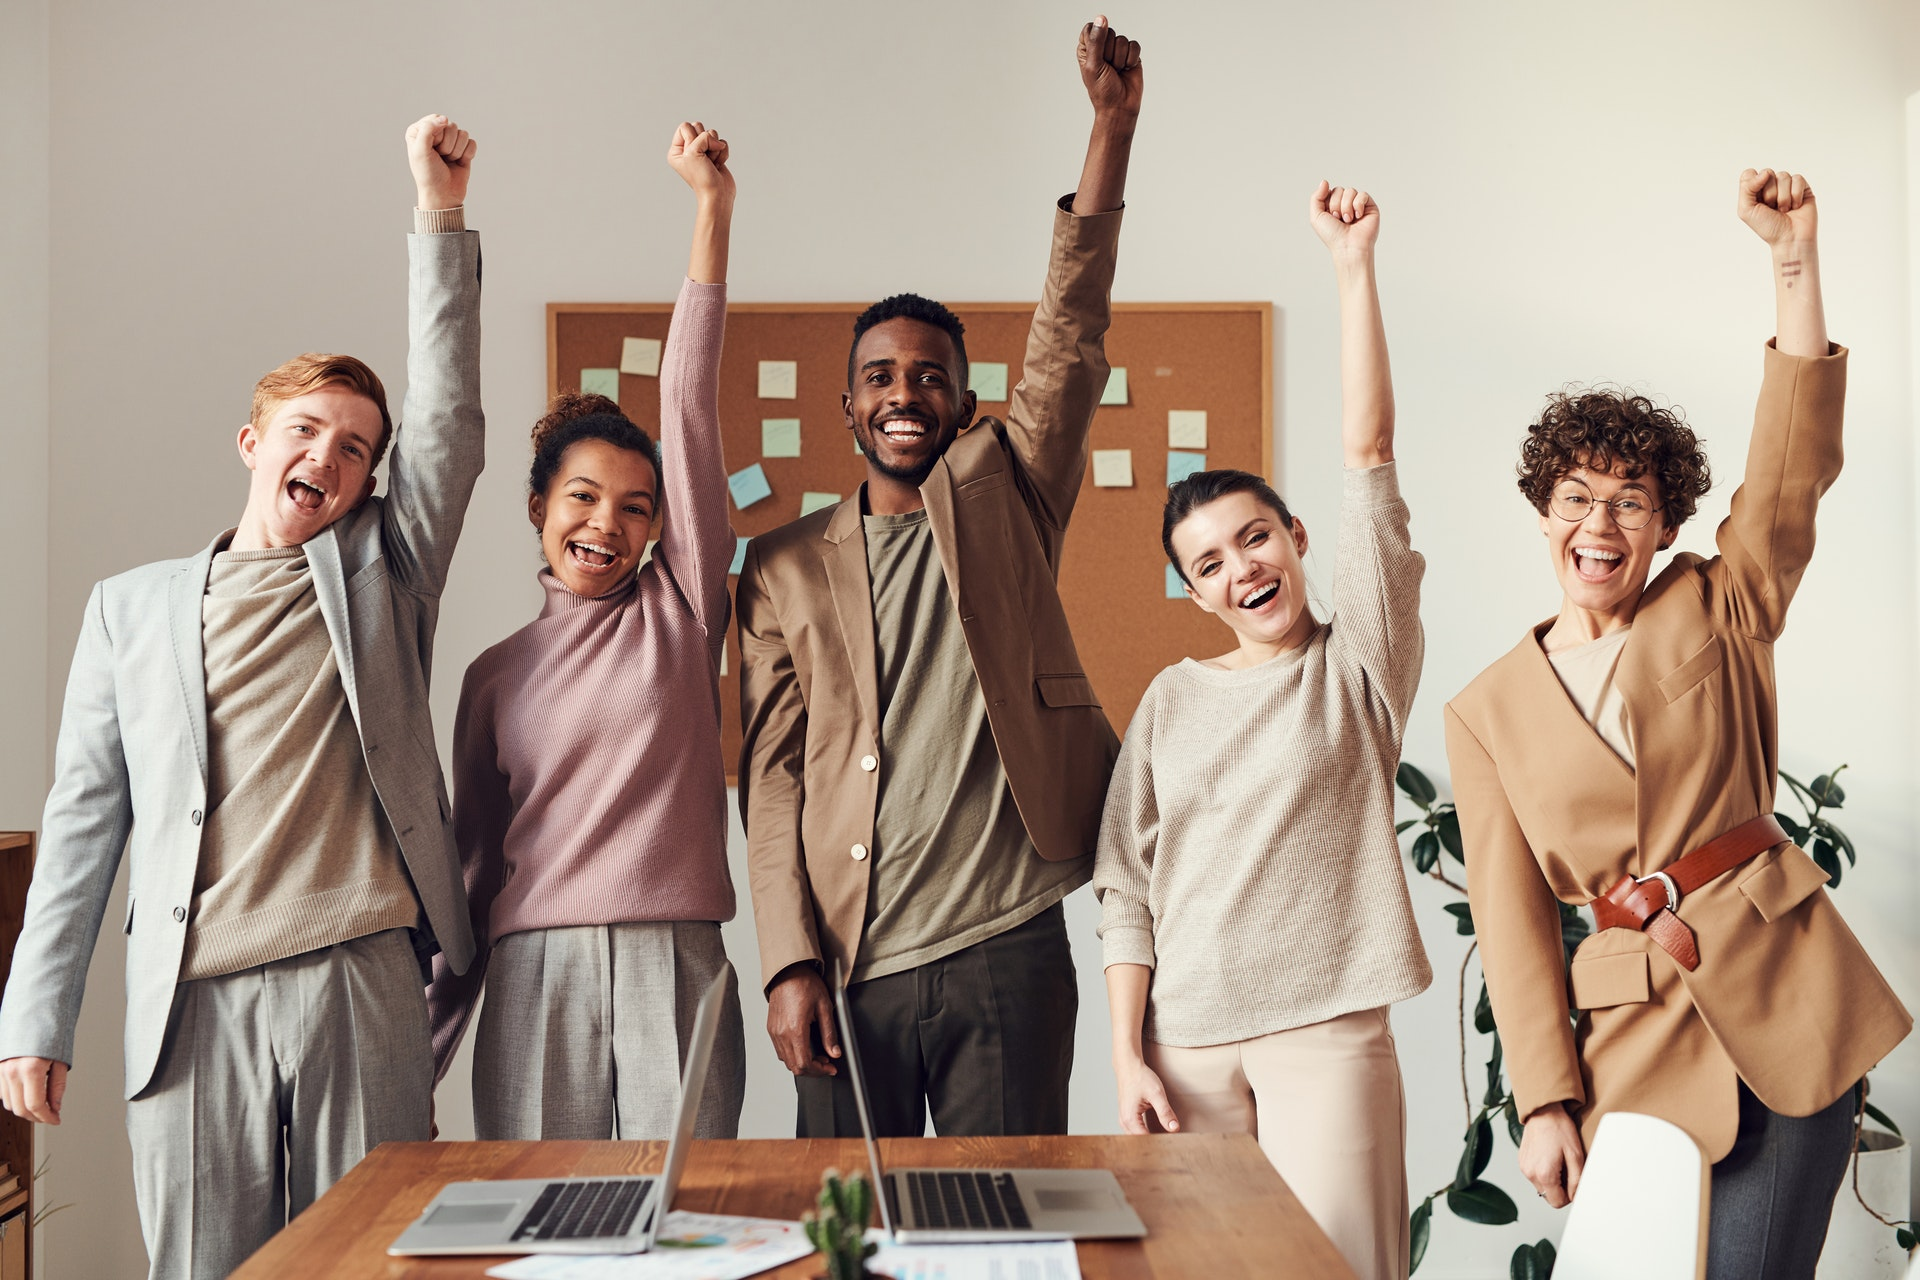 How To Hire Employees For A Small Business